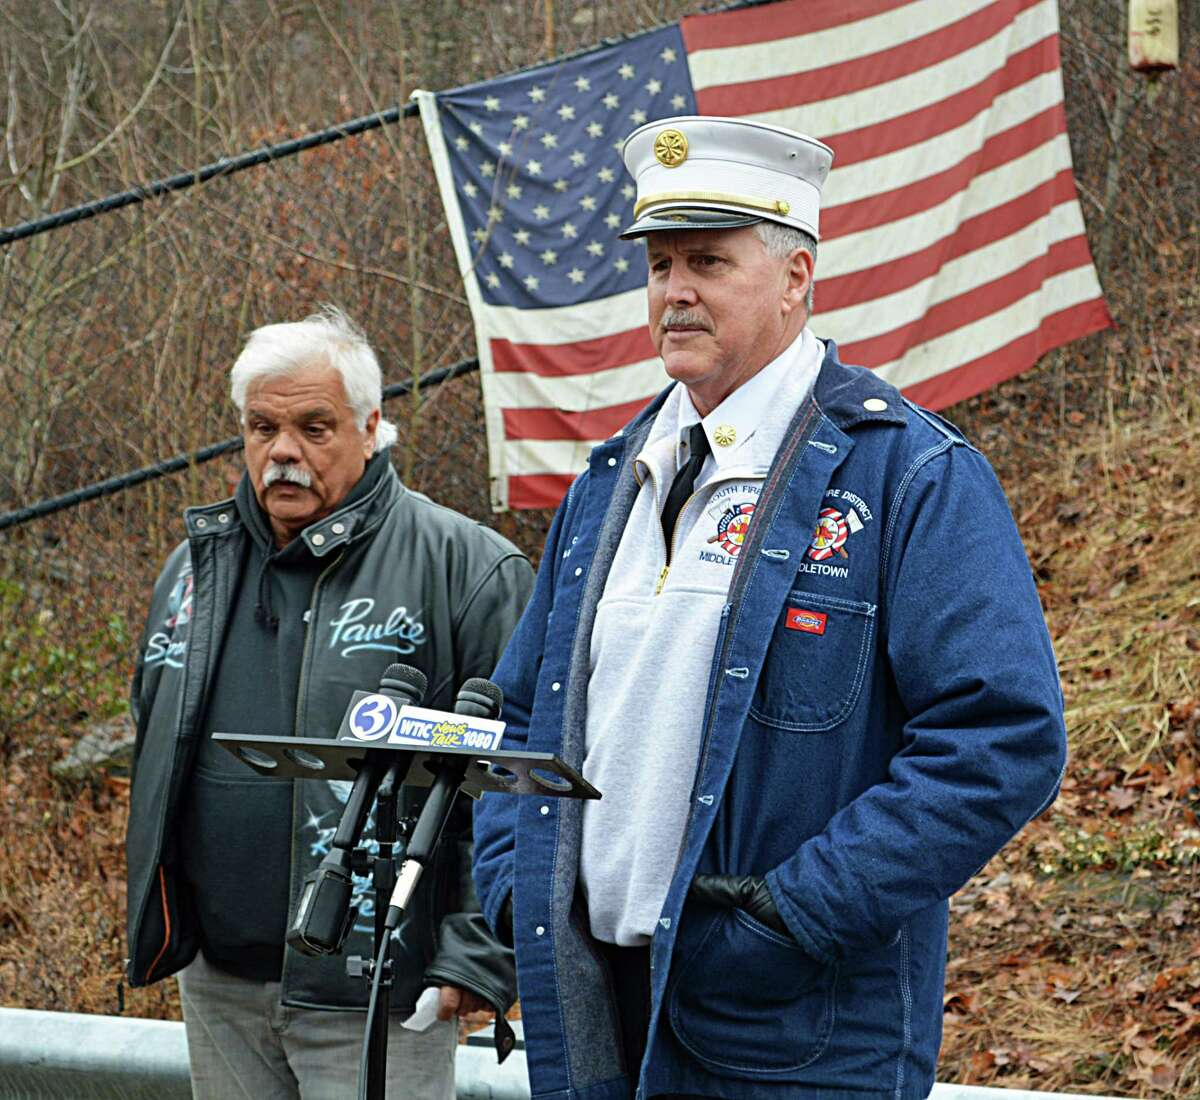 Middletown South Fire District Chief Michael Howley, right, speaks during the 2019 anniversary observance of the Kleen Energy blast. At left is retired Plumbers and Pipefitters Local 777 member Paul Venti.